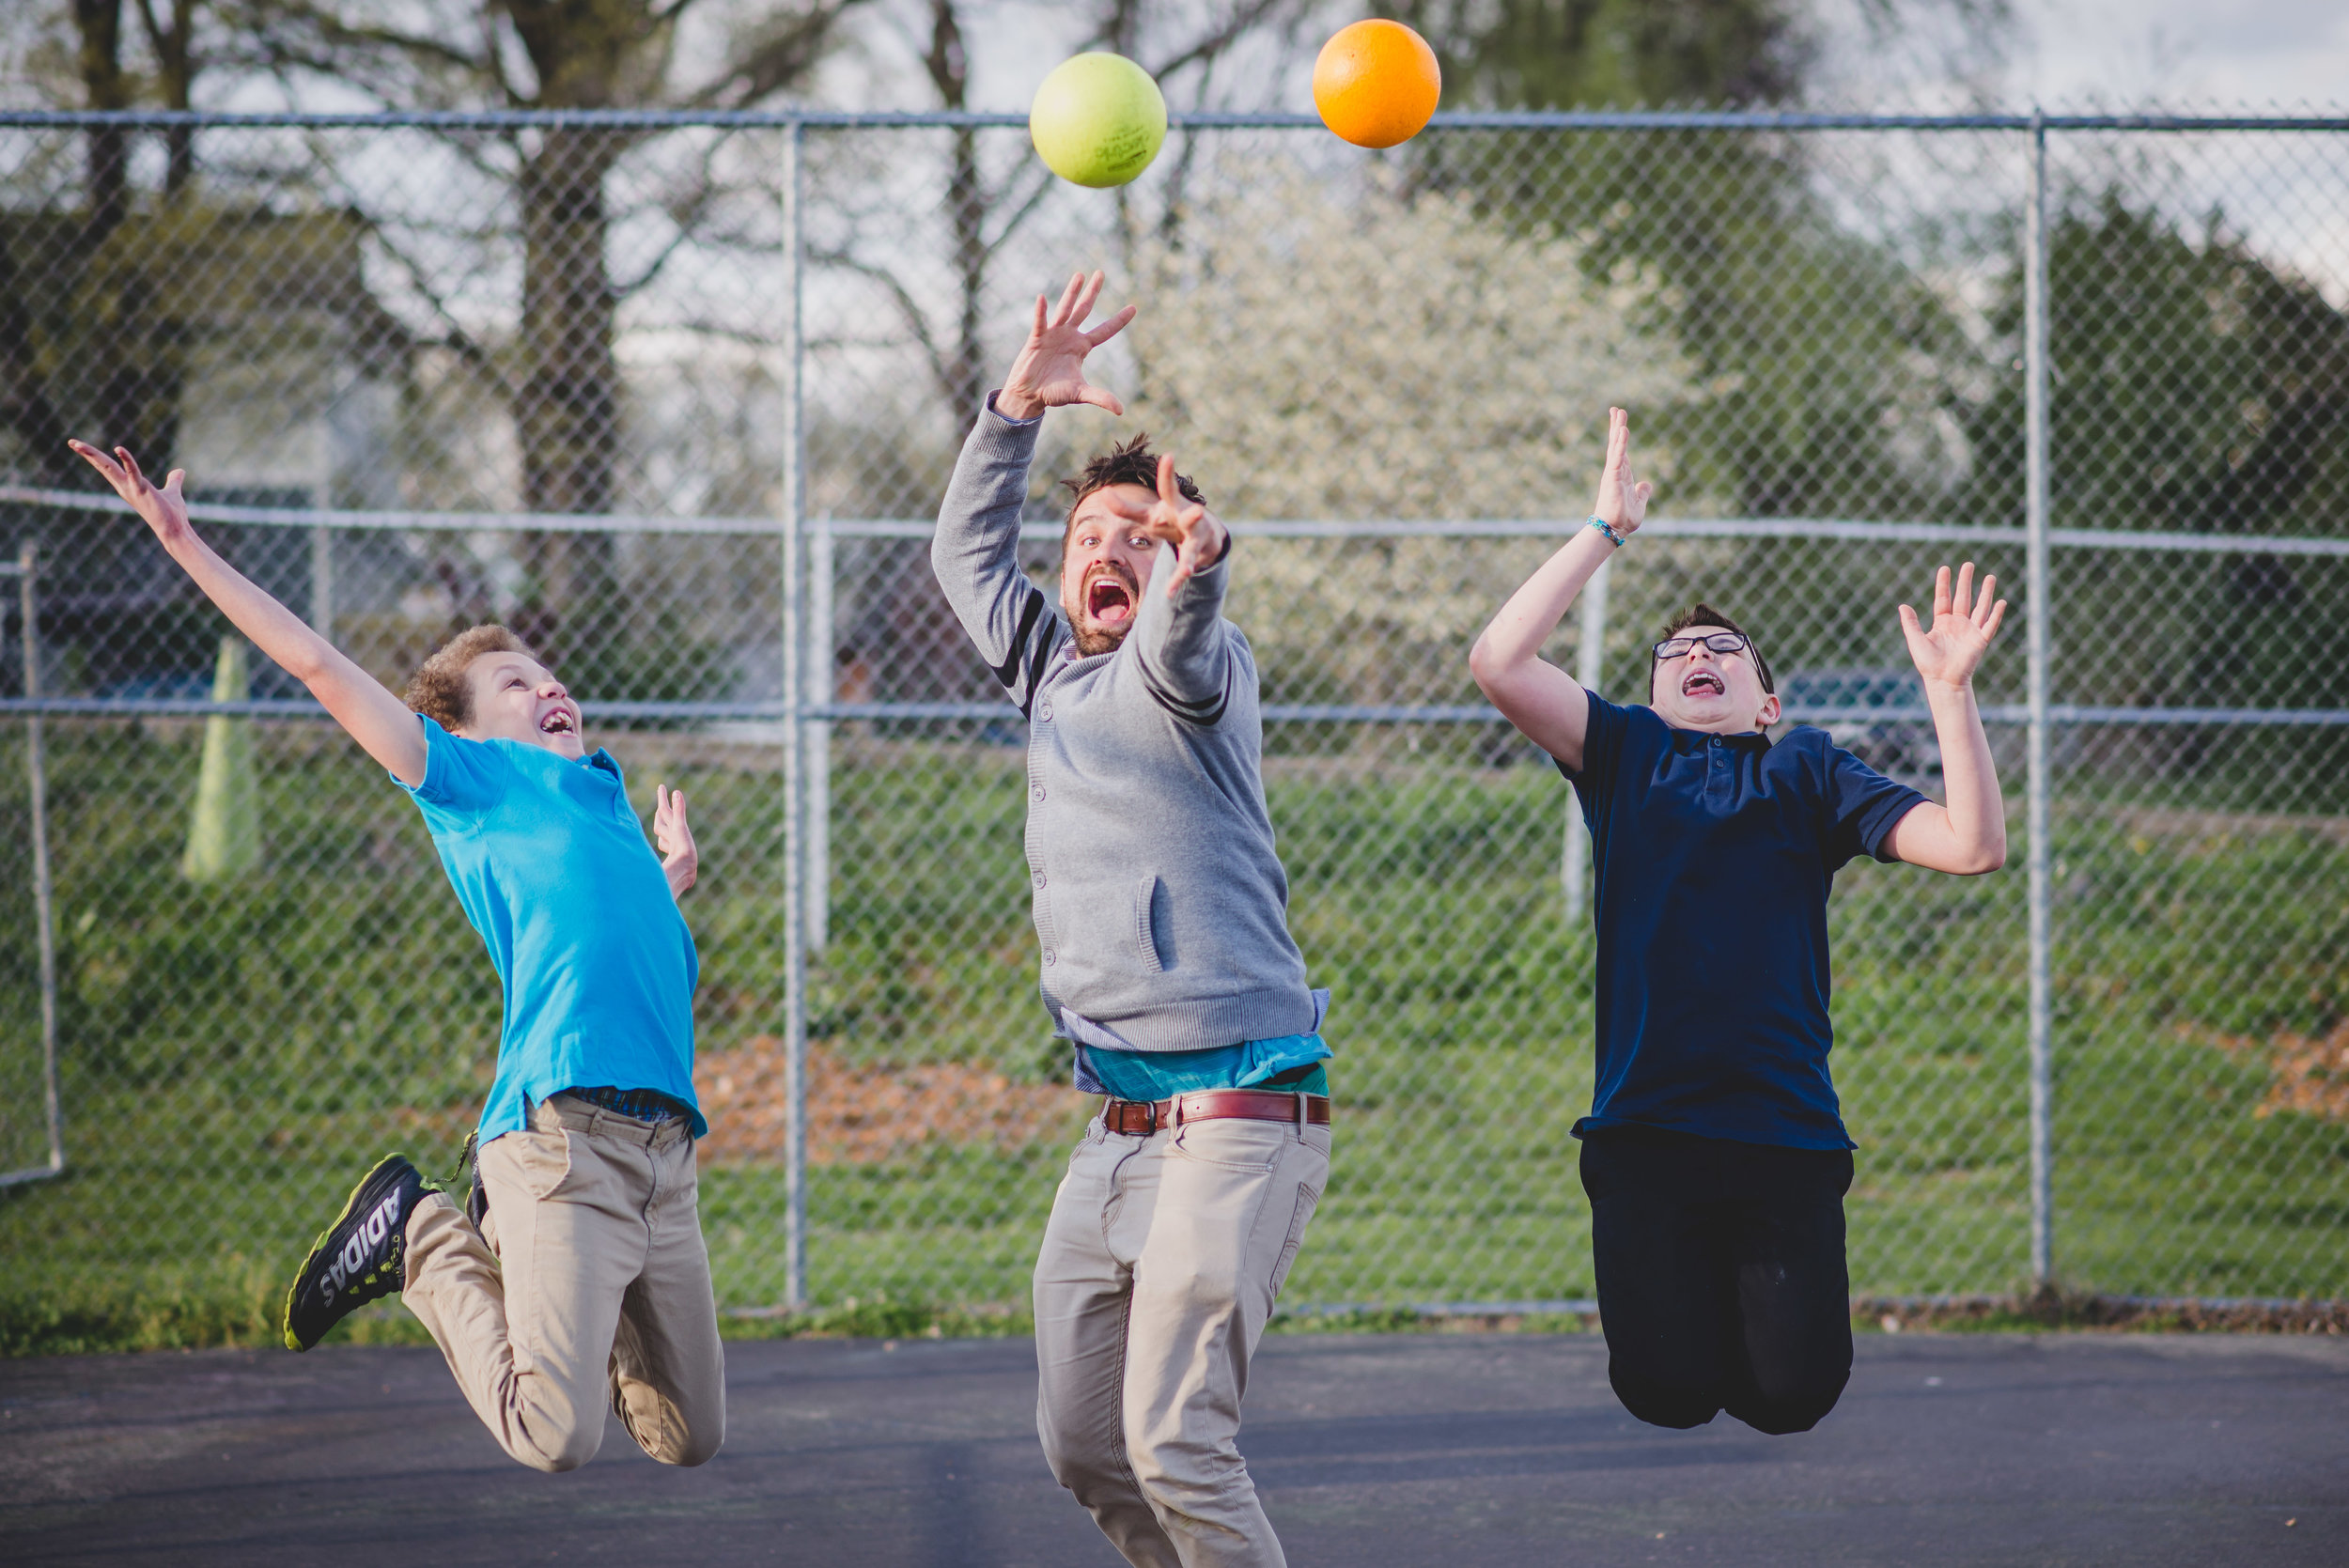 The first step to successfully working with middle school students: embrace the chaos. Benjamin Reese rivals our middle school students in energy and competition - particularly when it comes to dodgeball games.